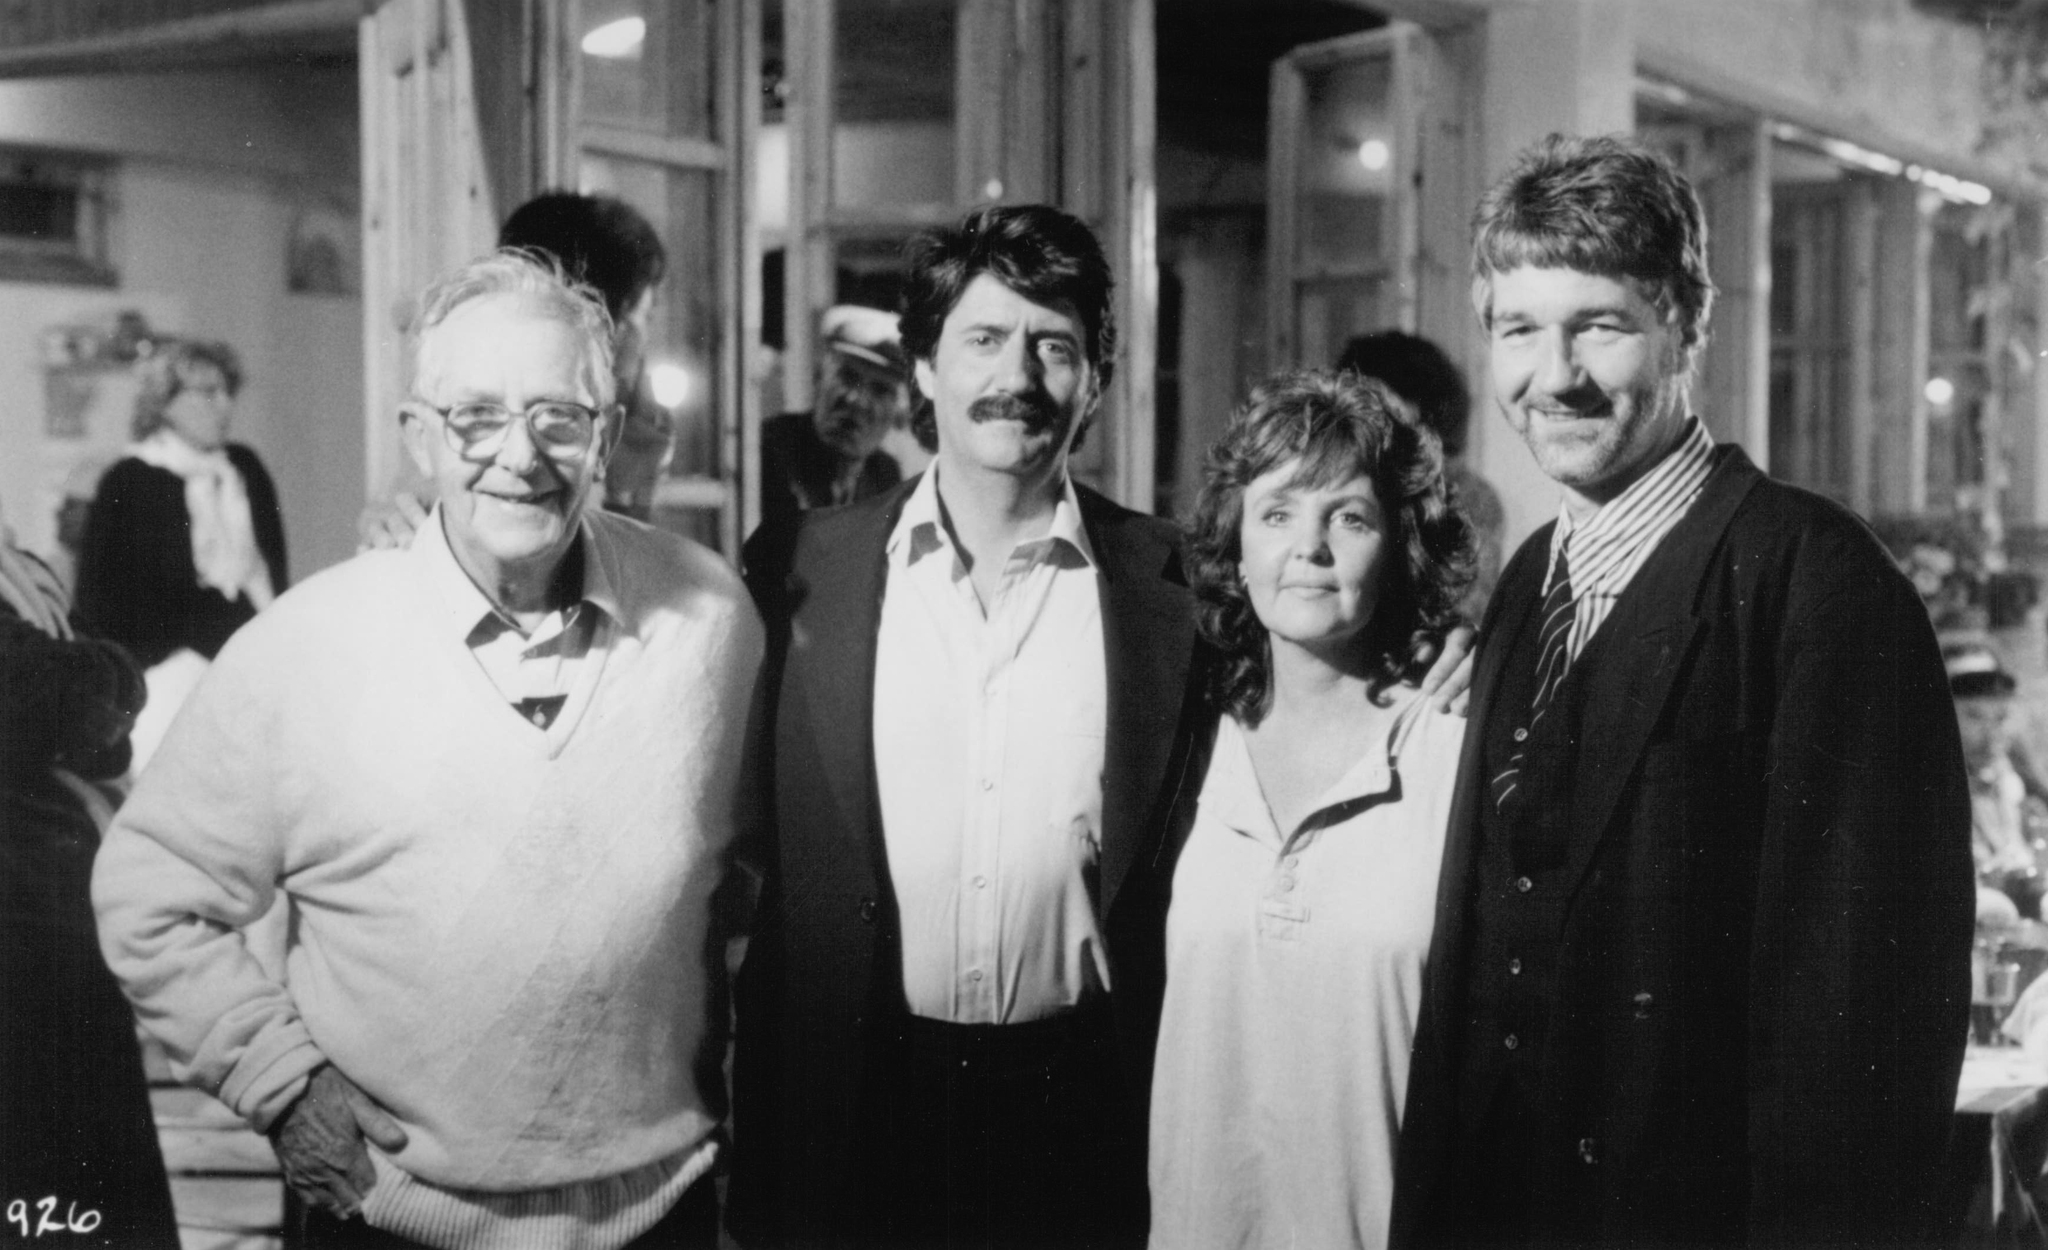 Tom Conti, Pauline Collins, Lewis Gilbert, and Willy Russell in Shirley Valentine (1989)